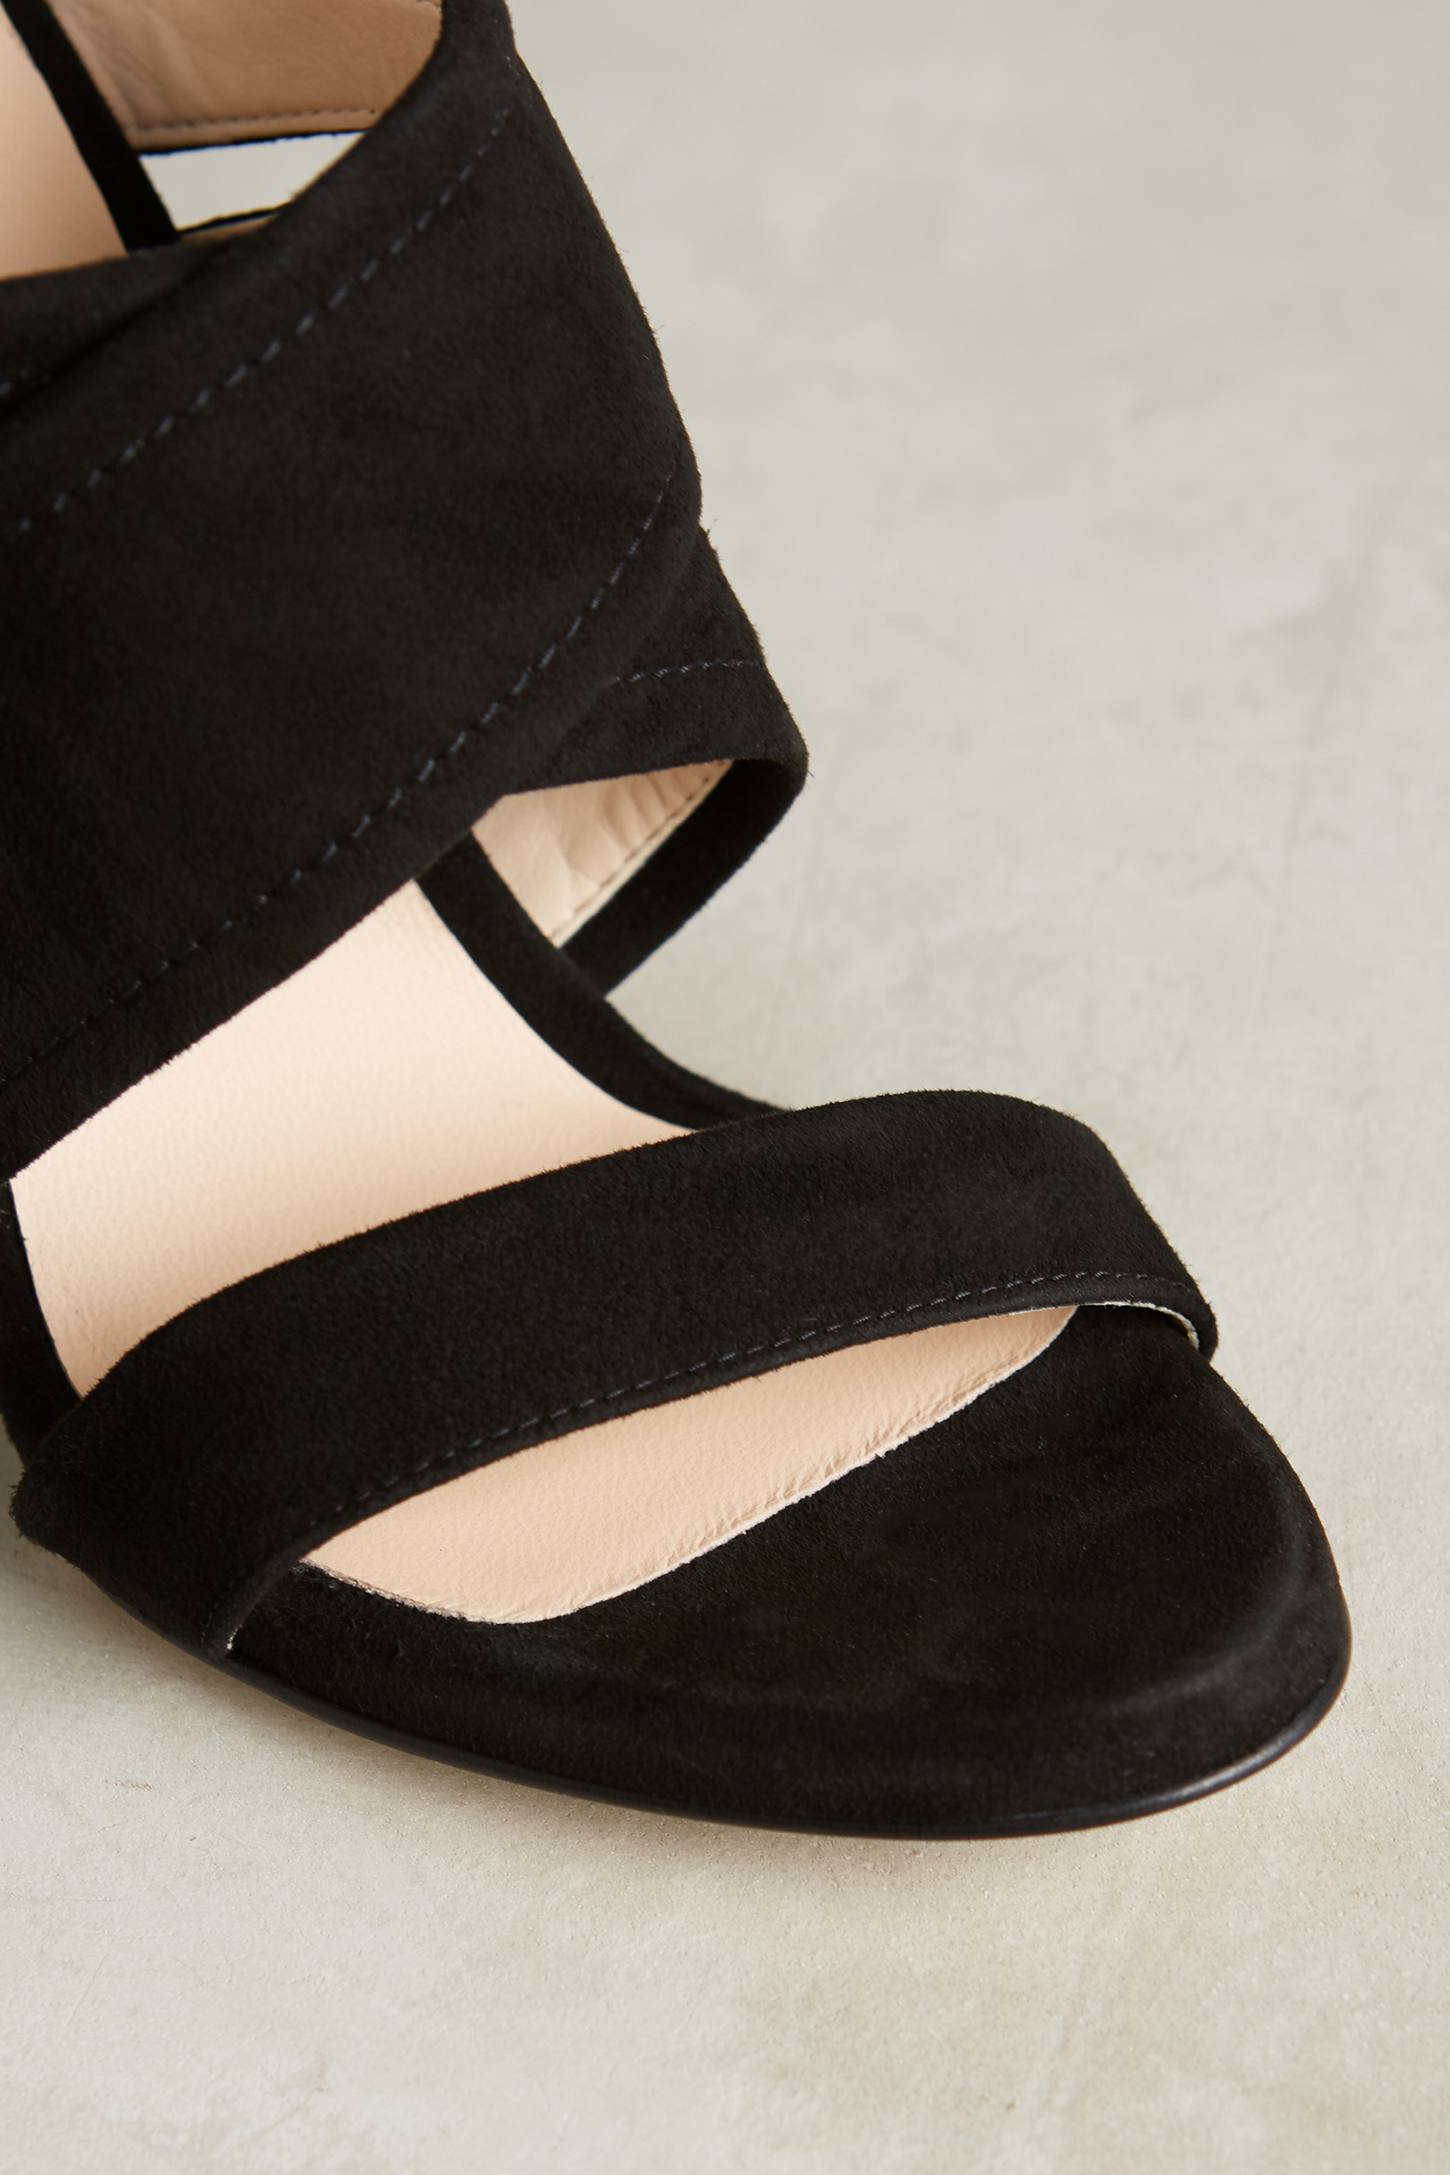 Slide View: 4: Miss Albright Escuro Wedges